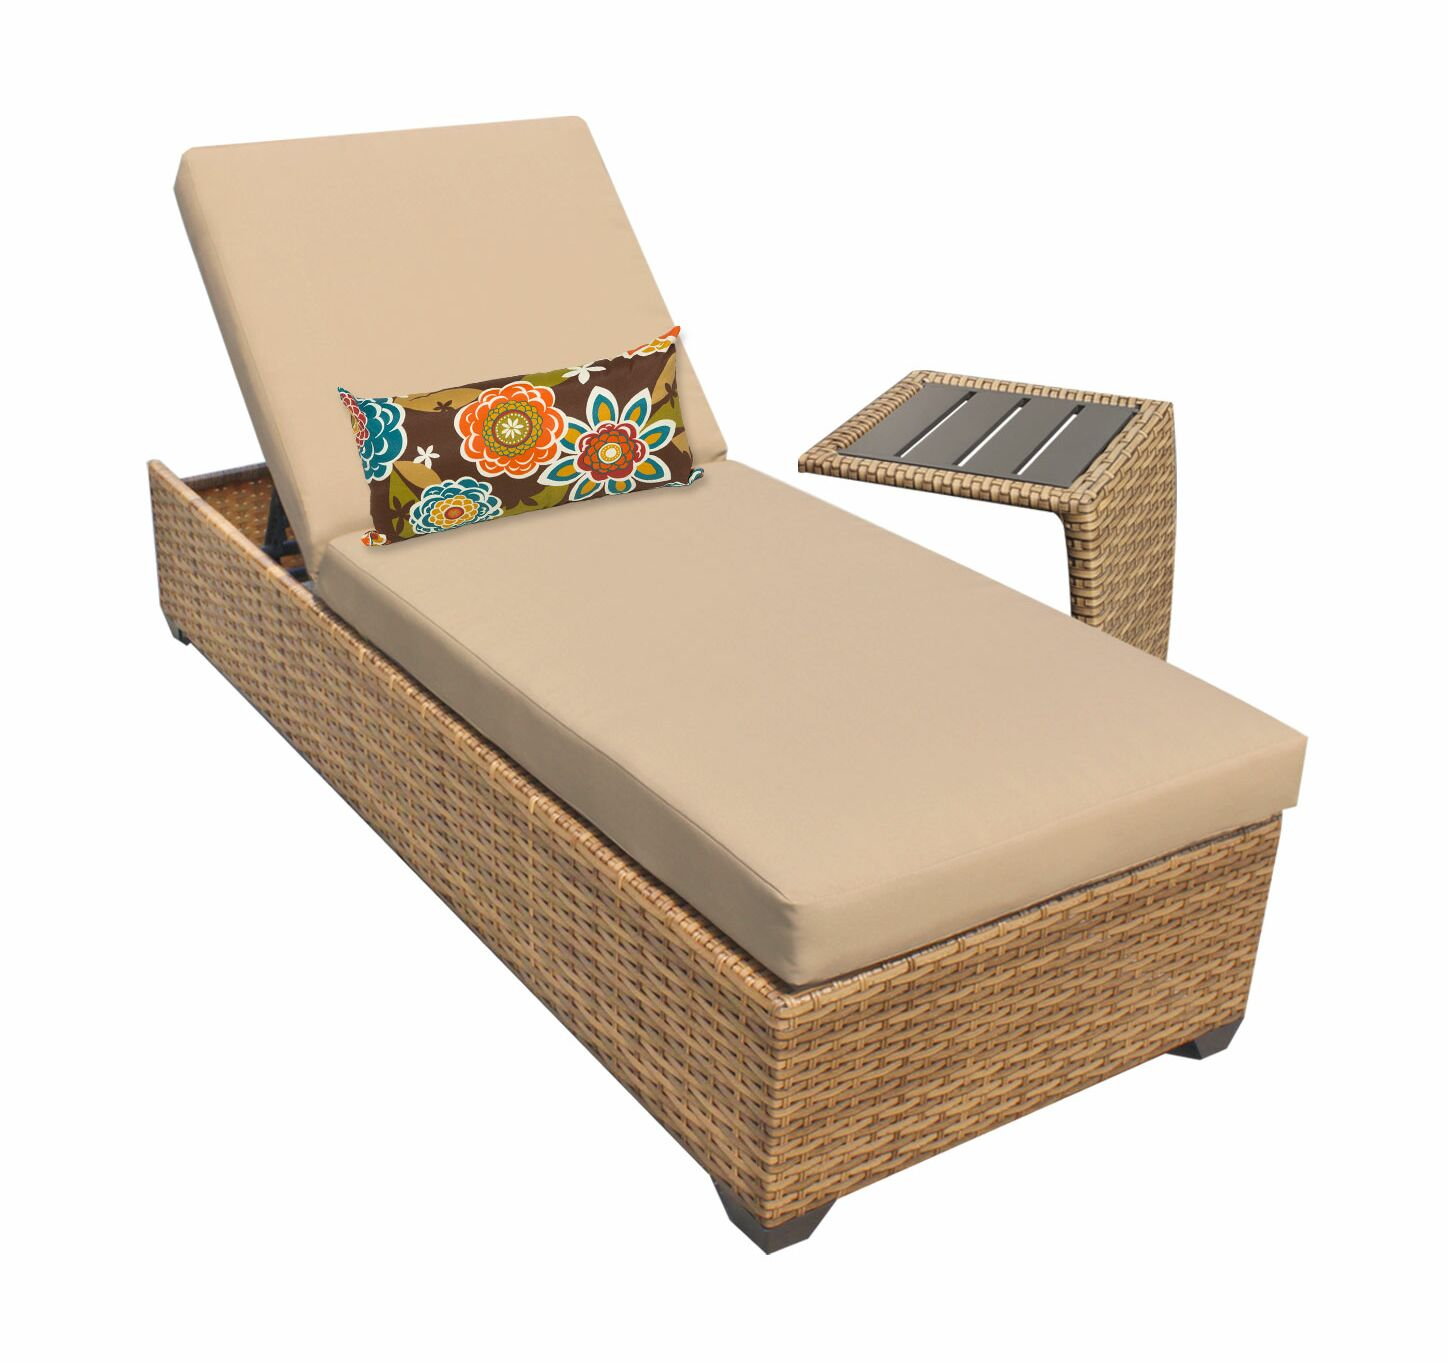 Asellus Chaise Lounge with Cushion and Table Color: Wheat